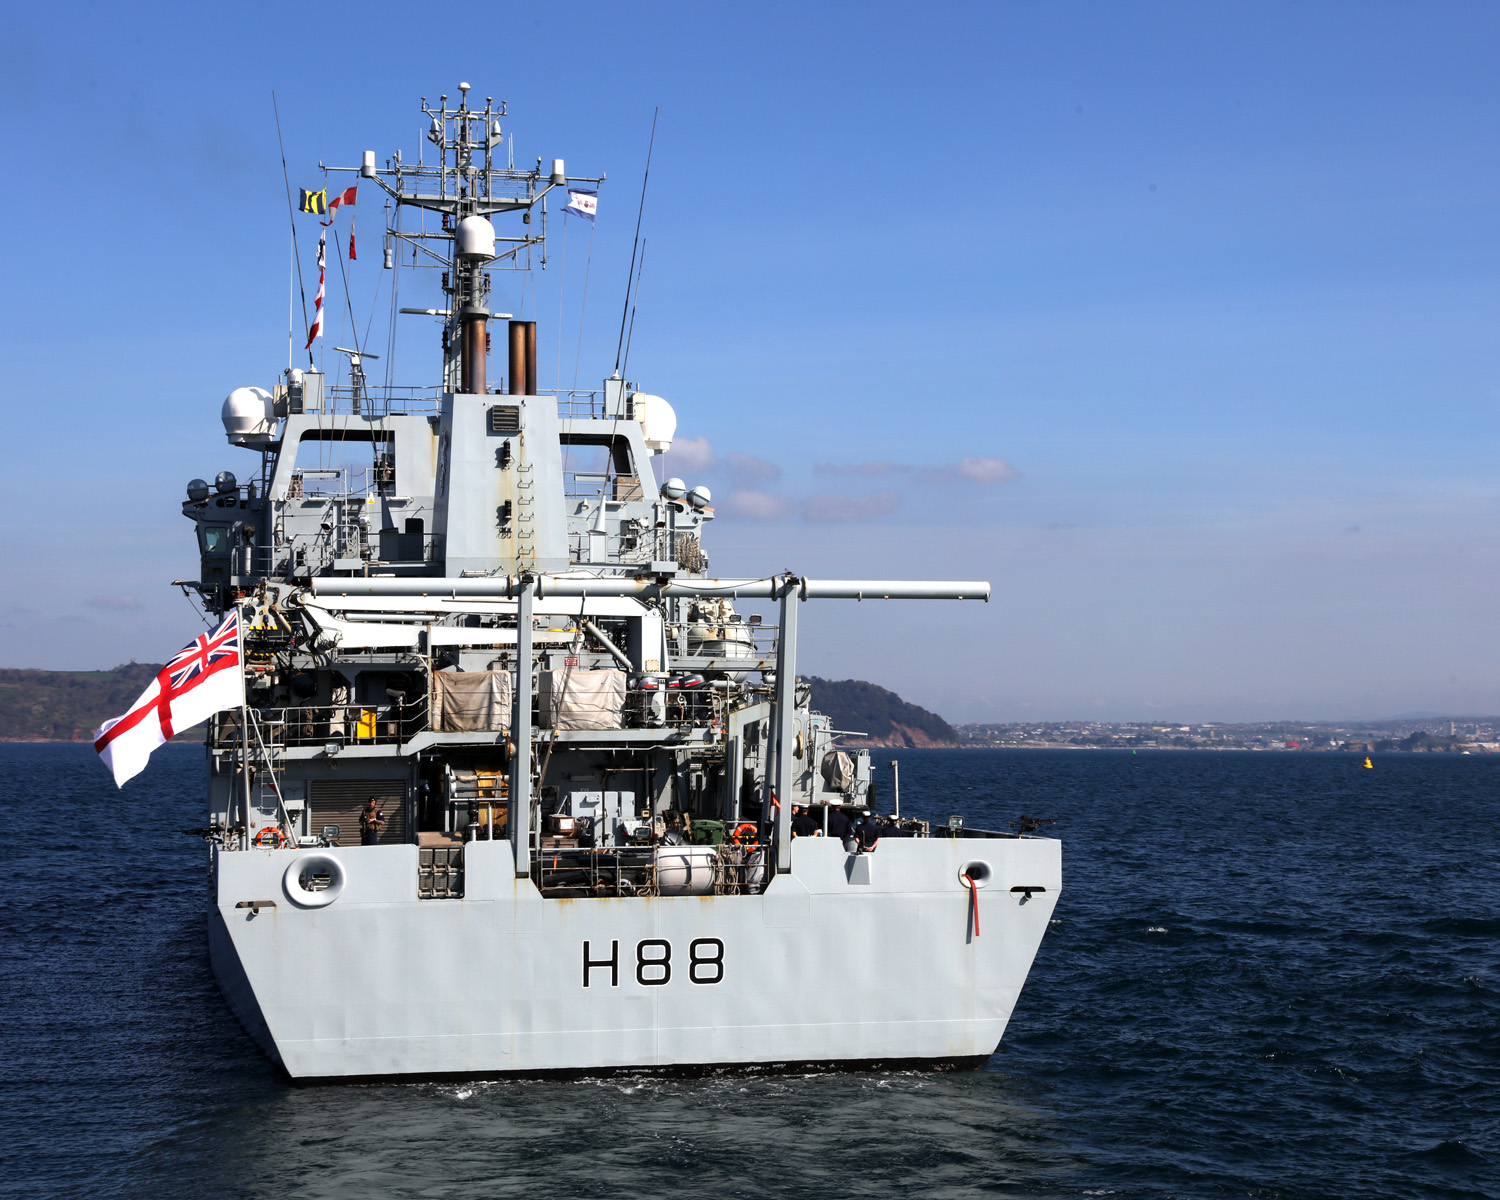 Hms Enterprise Home After Three Years Away Royal Navy